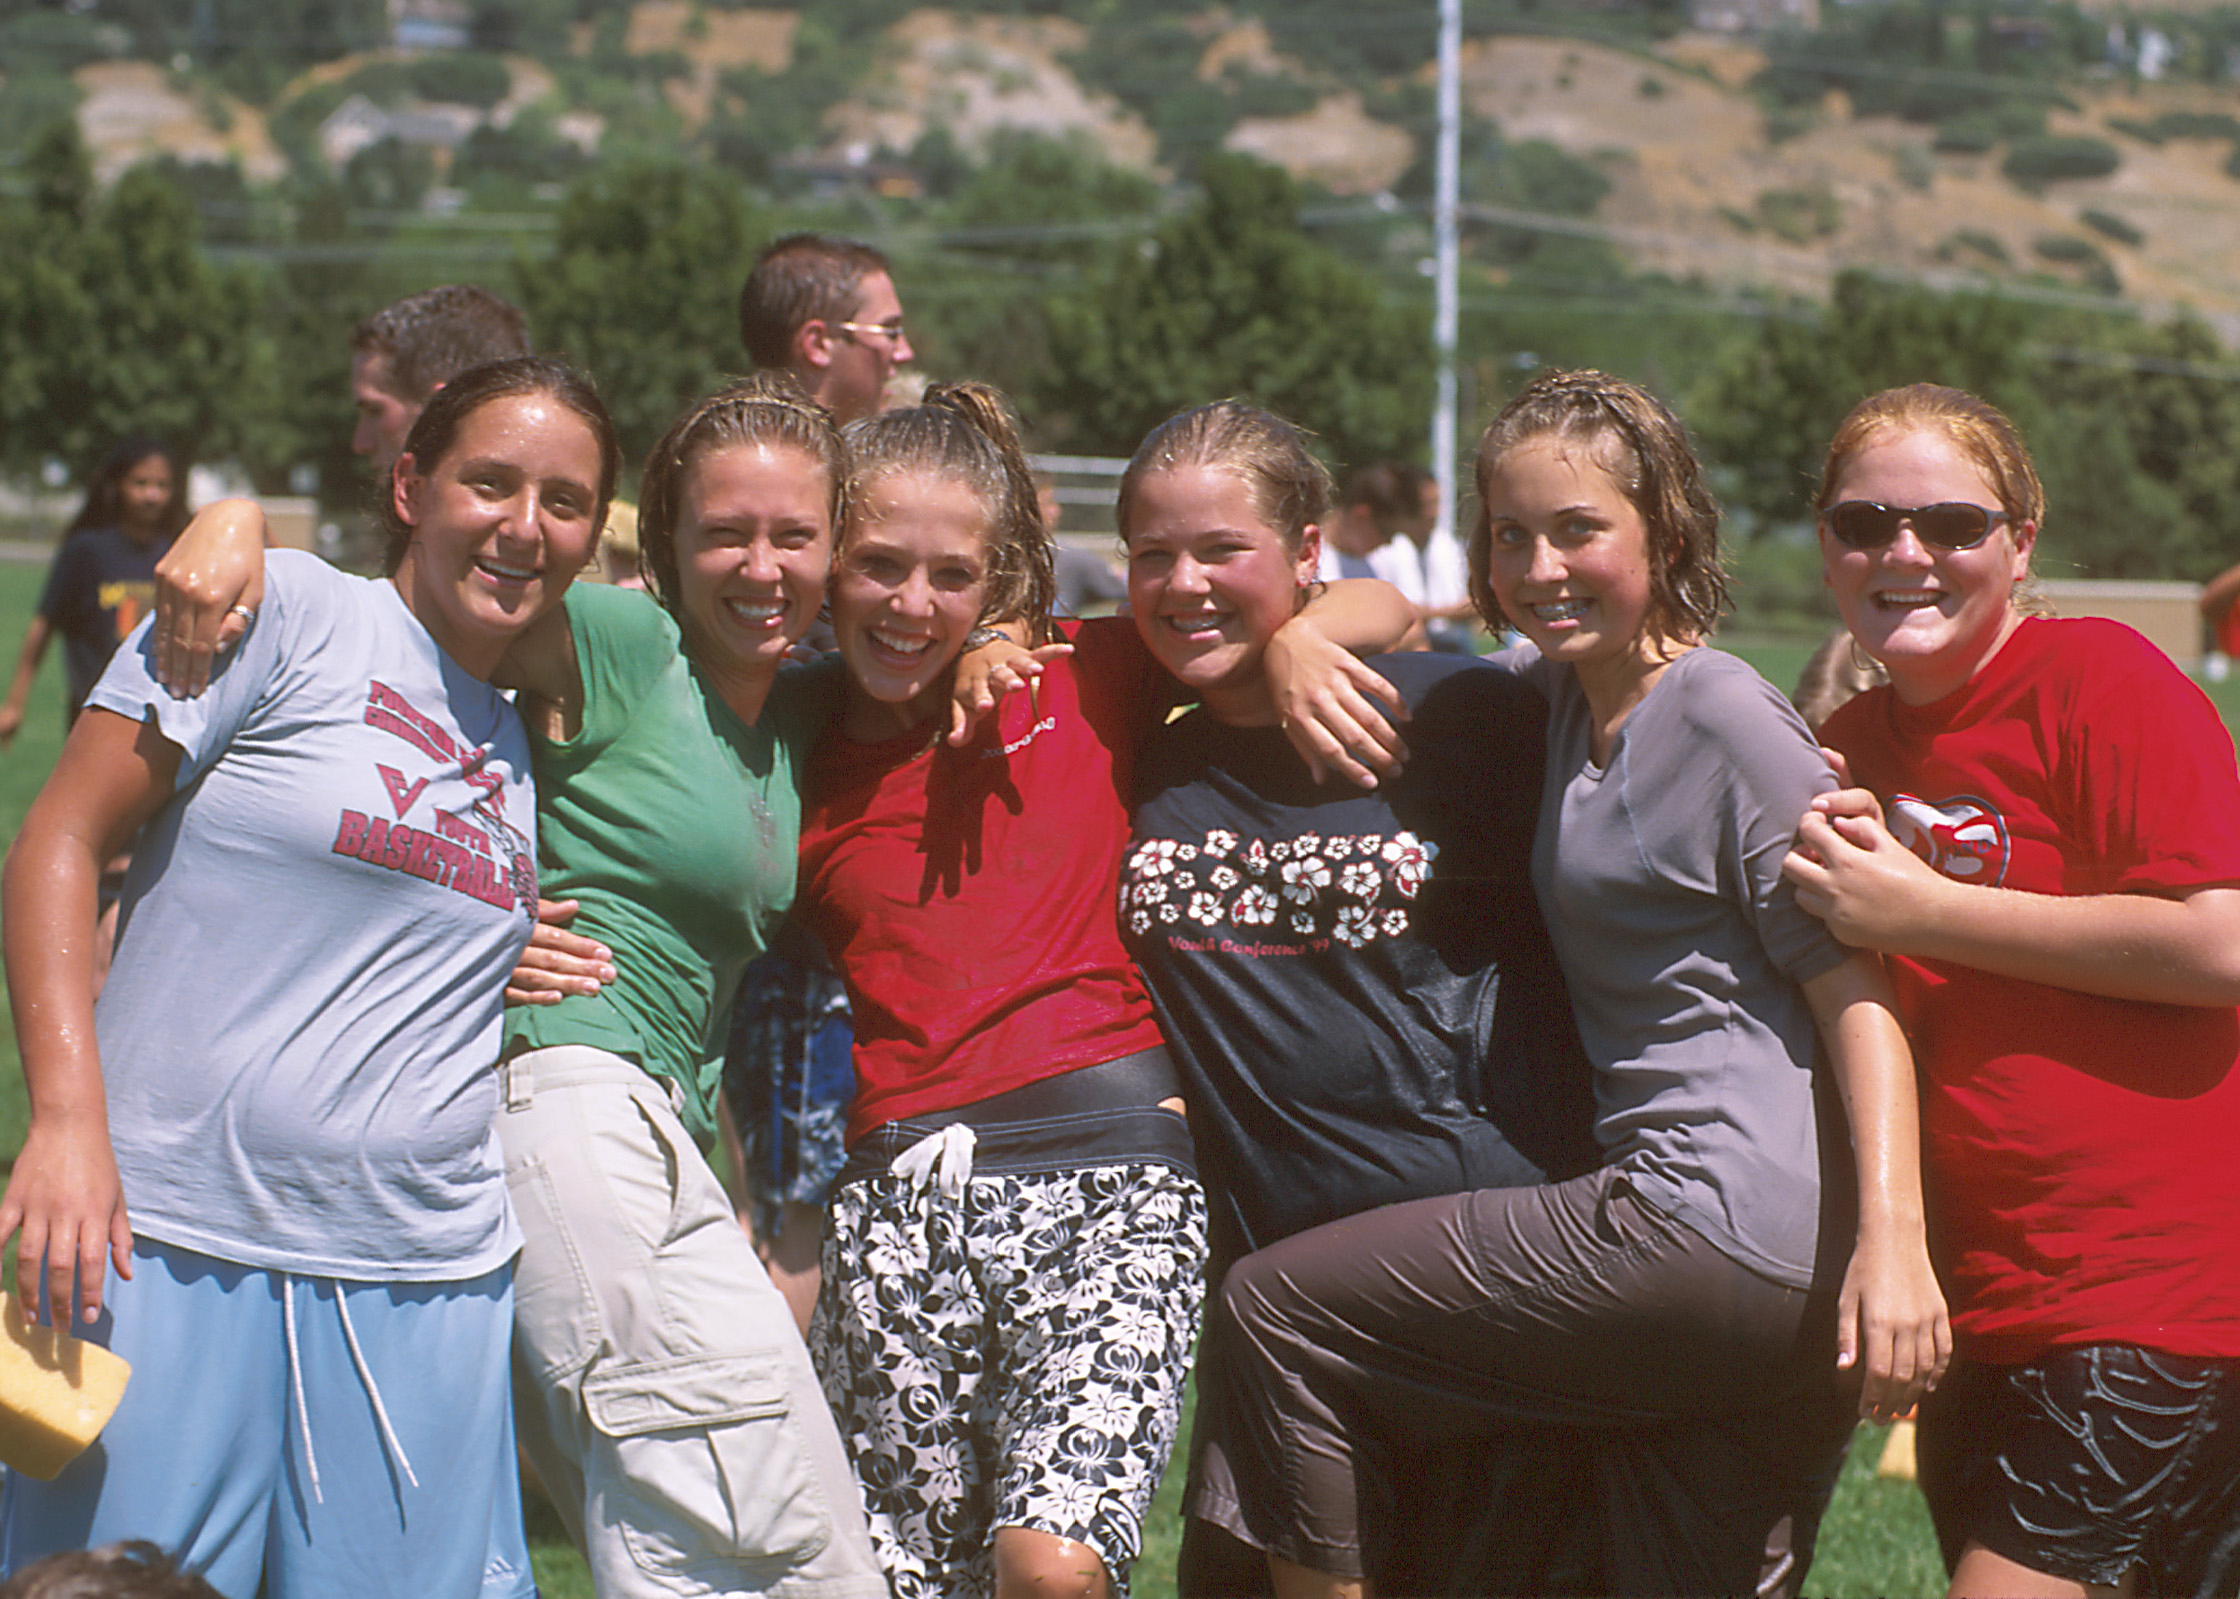 A group of young women have fun at Especially for Youth in 2000.